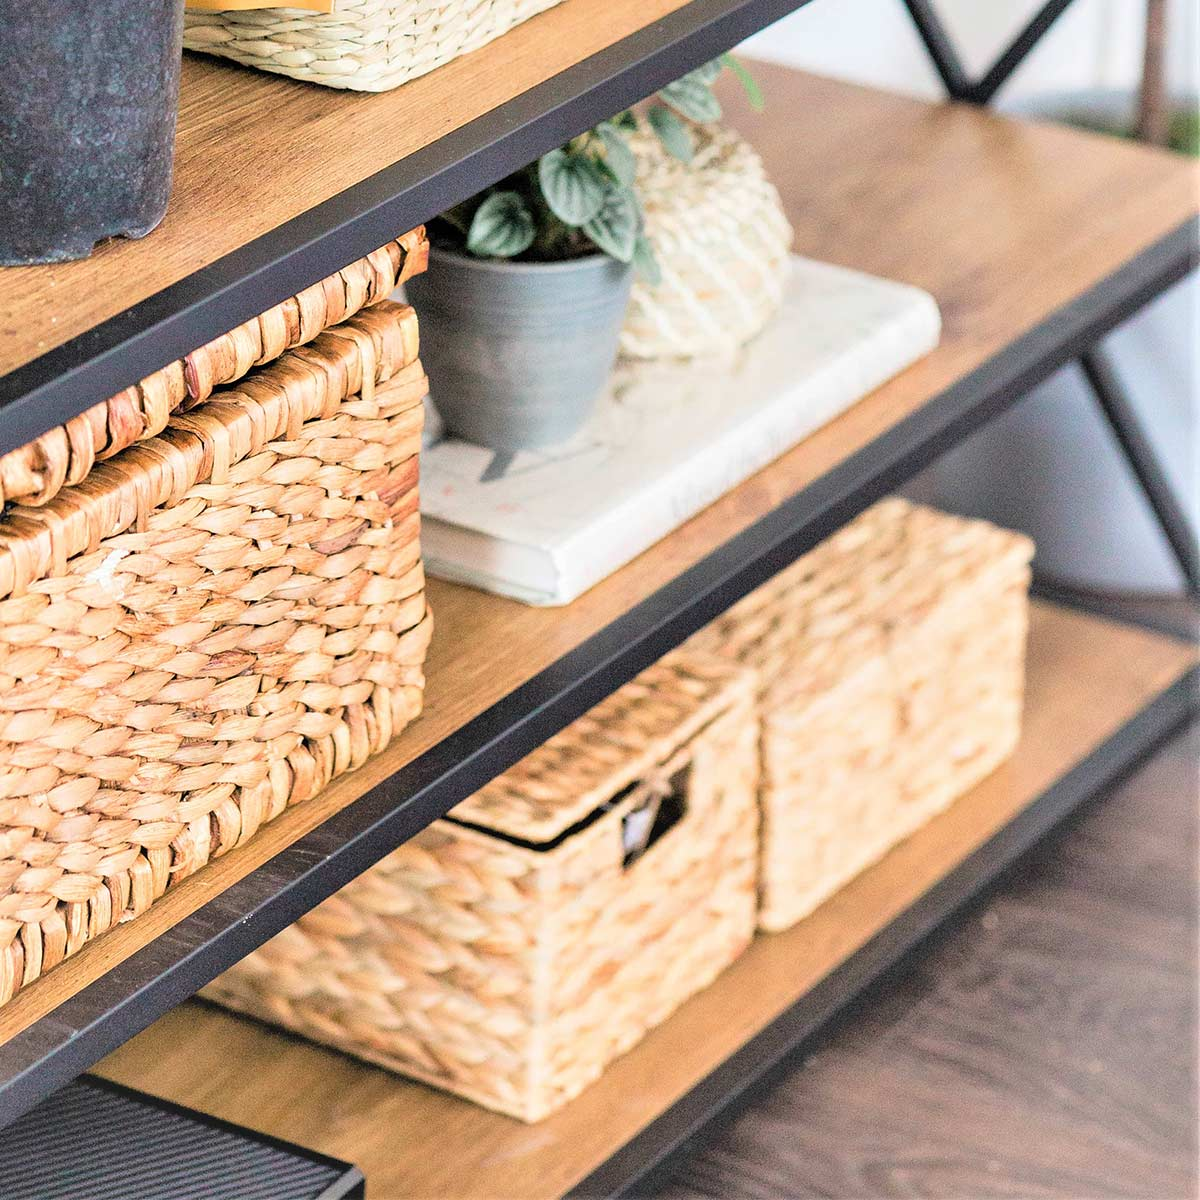 Plants and wicker baskets for storing clutter on wood shelves.